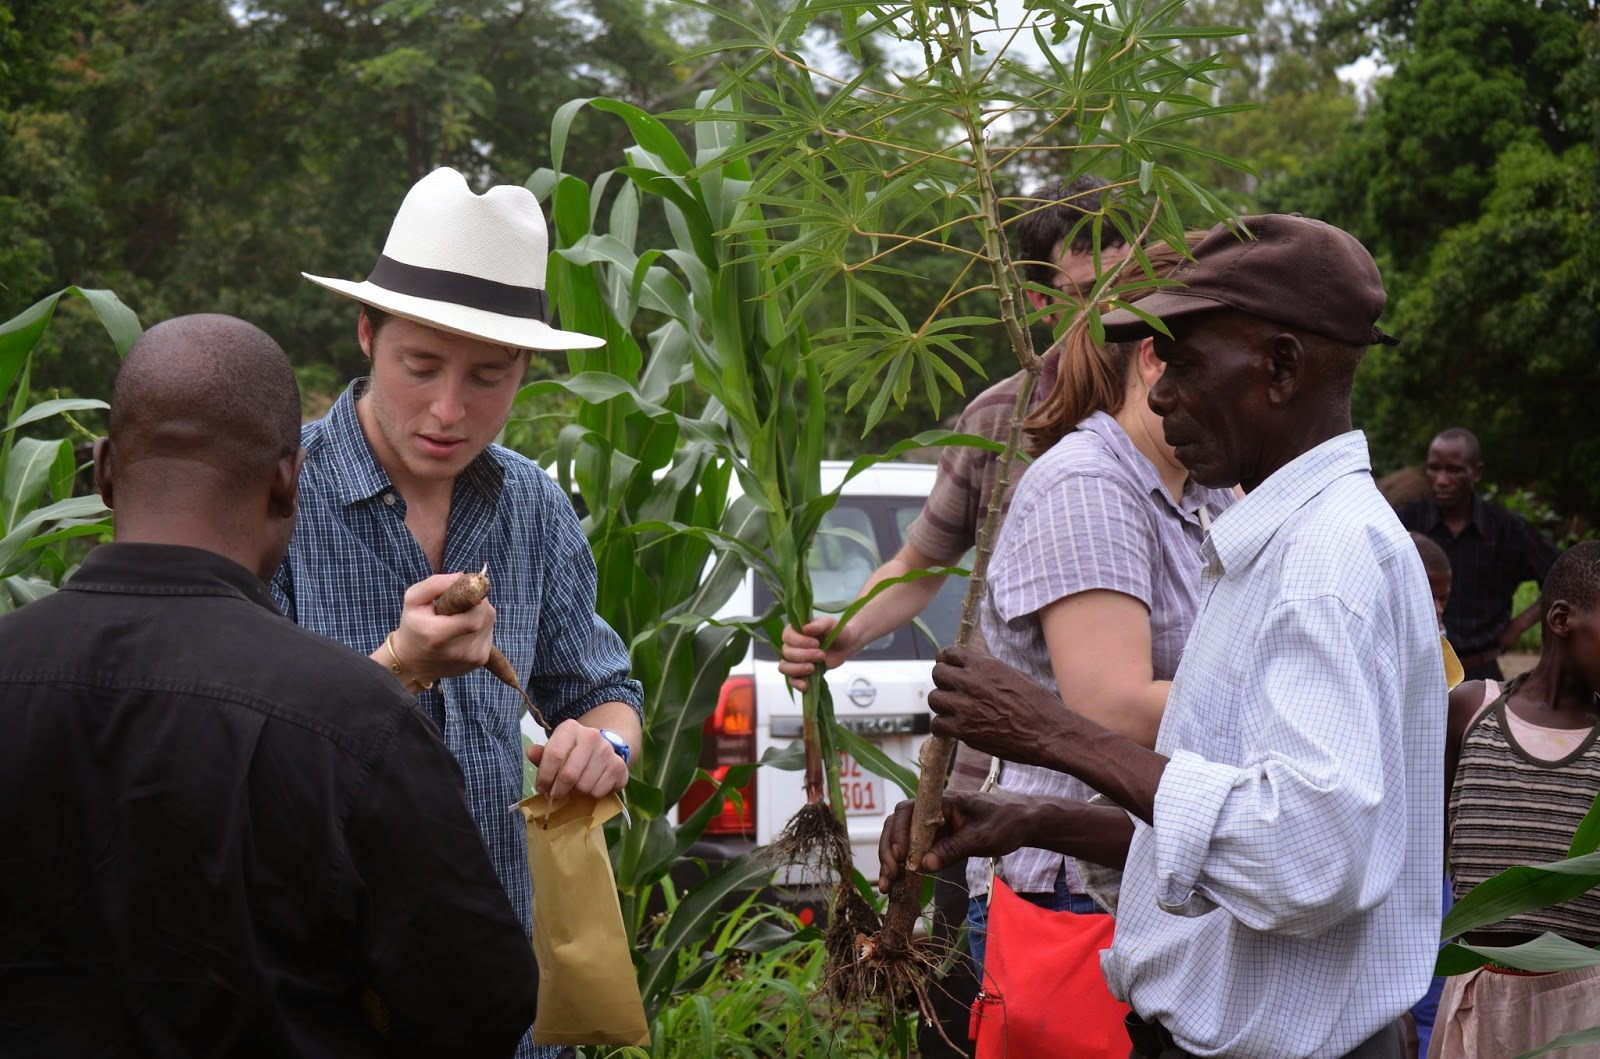 Edward in his panama hat out in Malawi